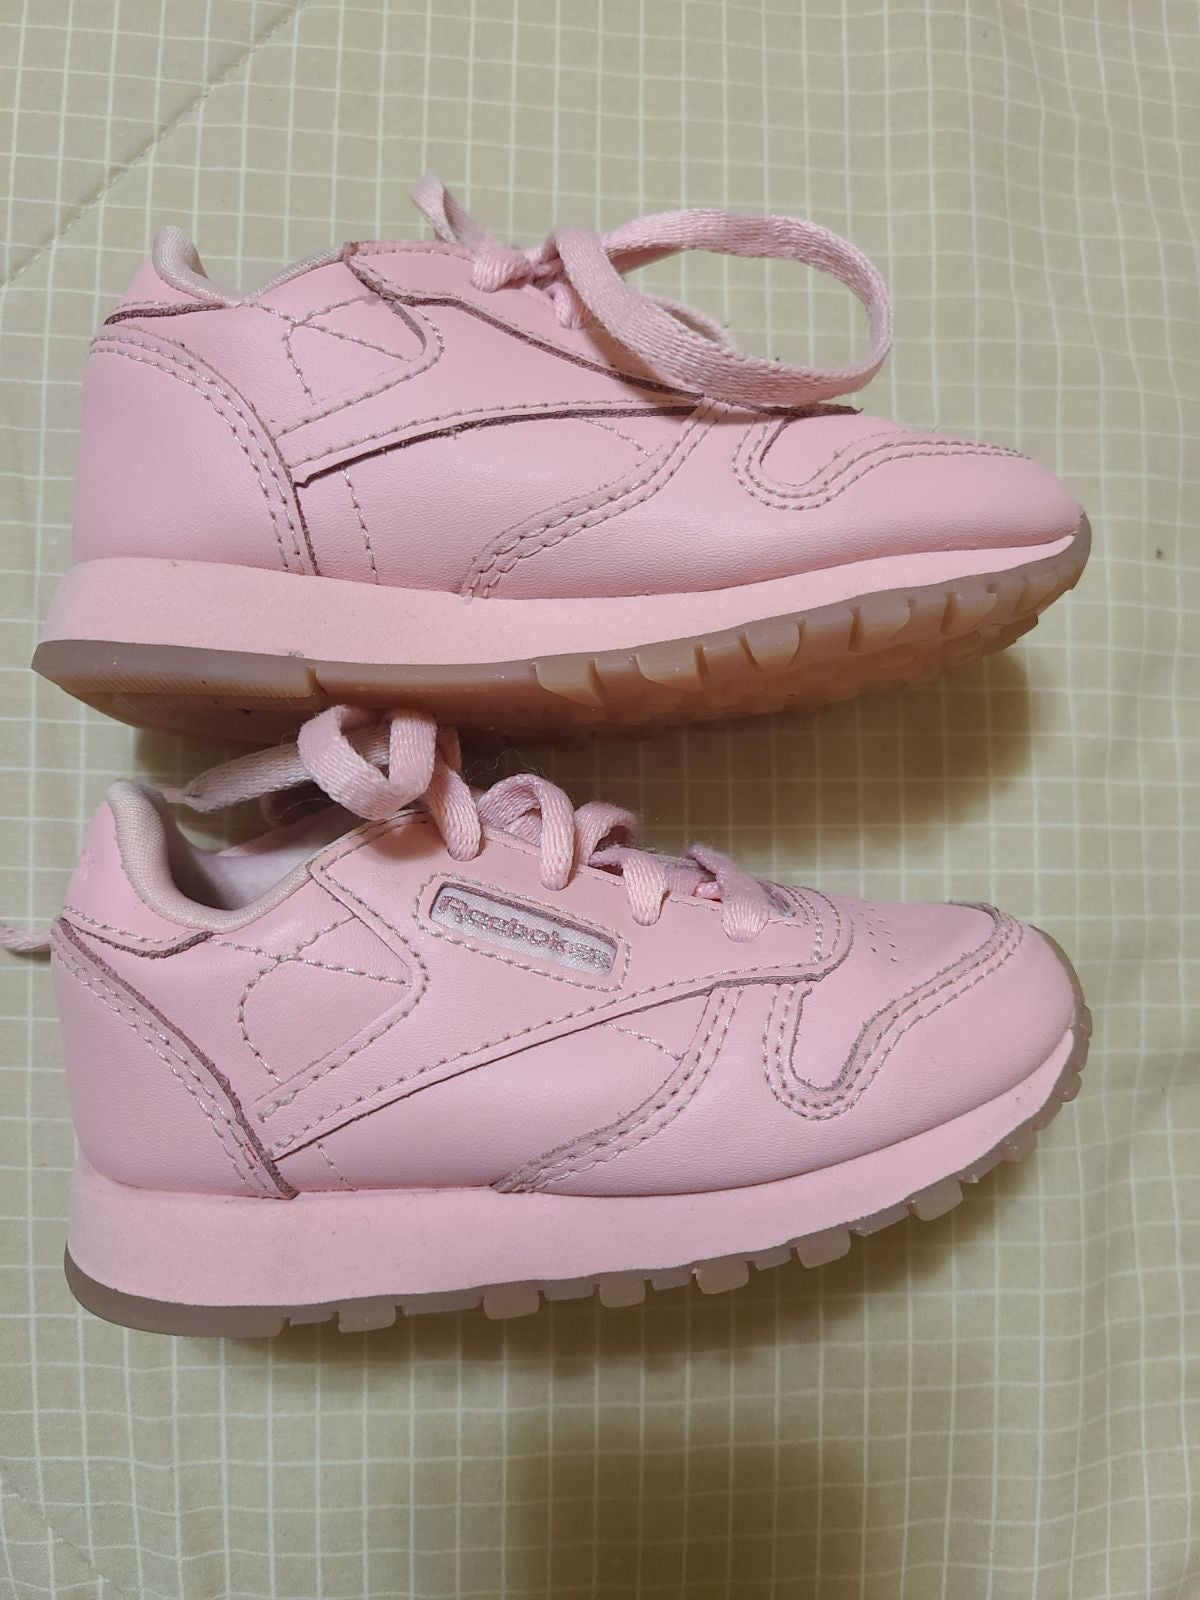 Infant classic Reebox pink sneakers